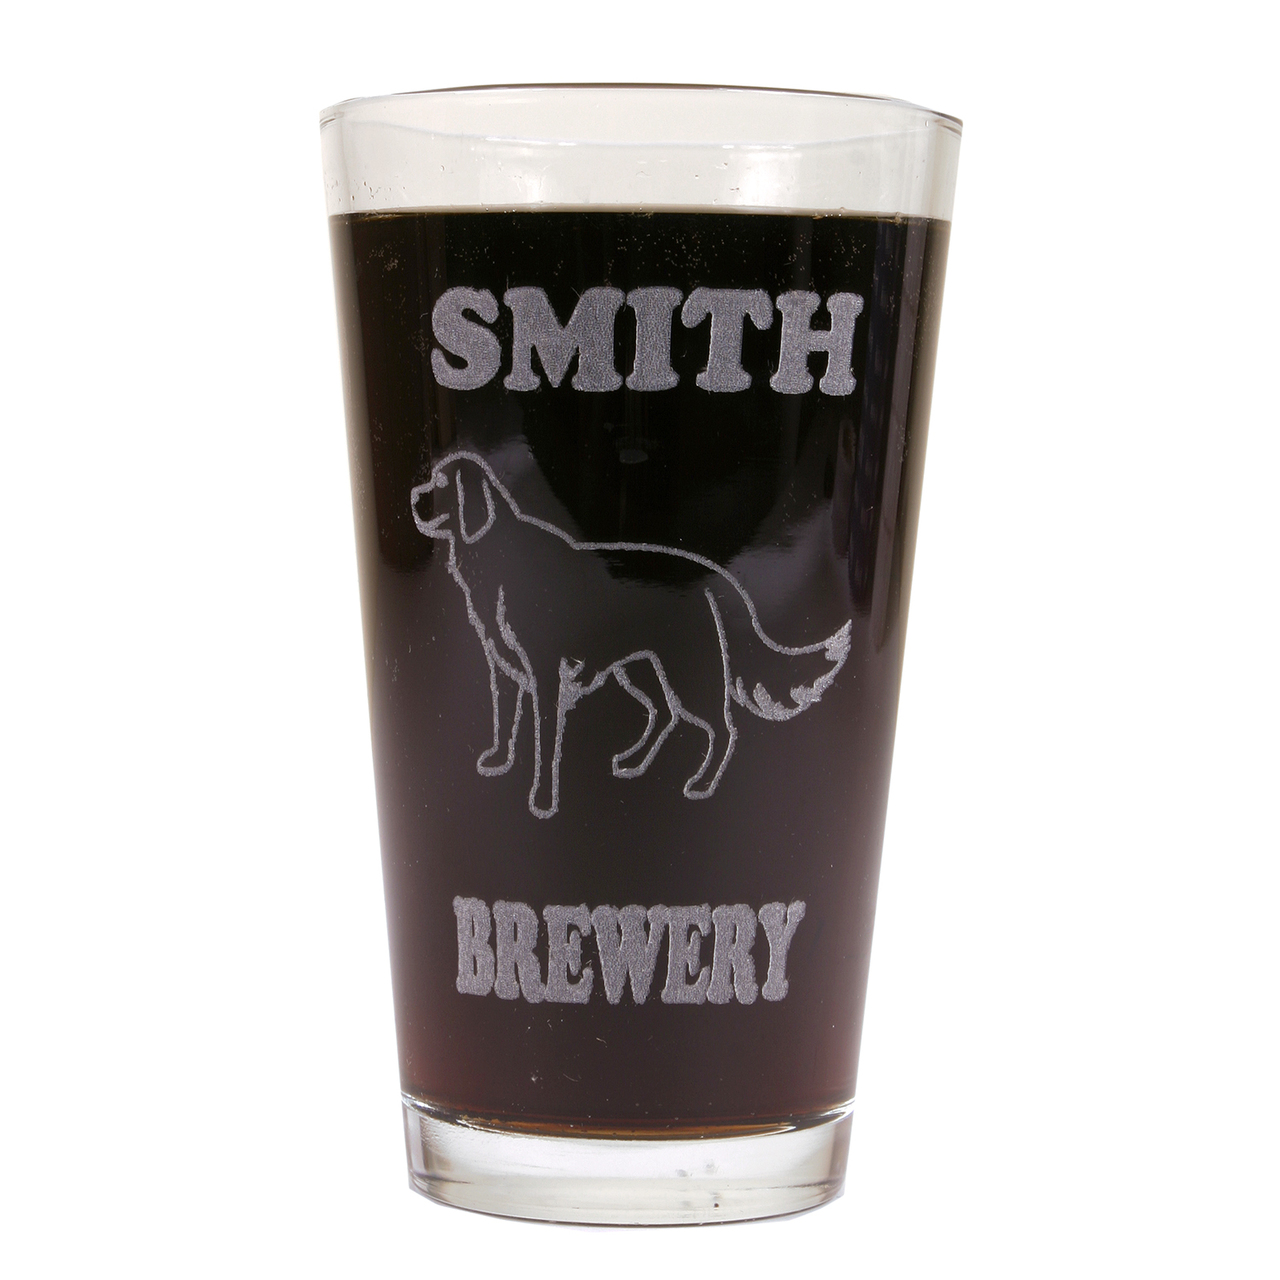 Hot Dog Personalized Pint Glass Beer Mug - Golden Retriever